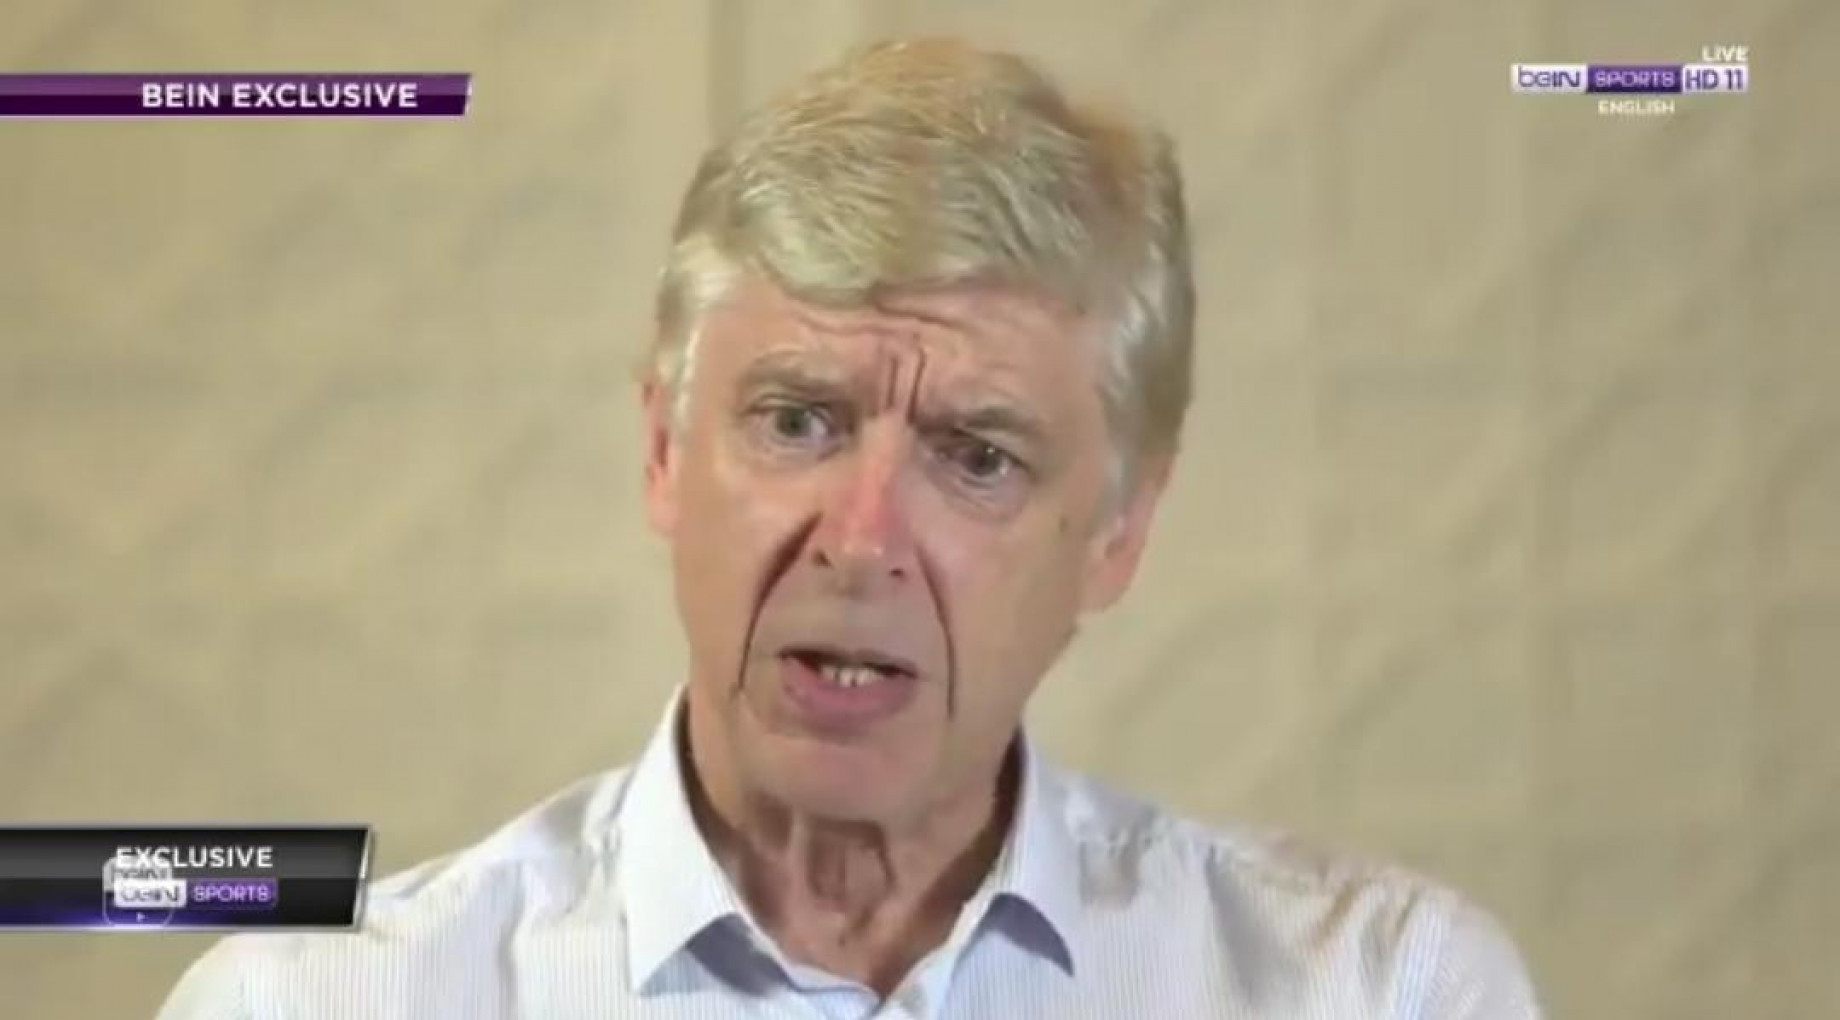 wenger 2 SCREEN